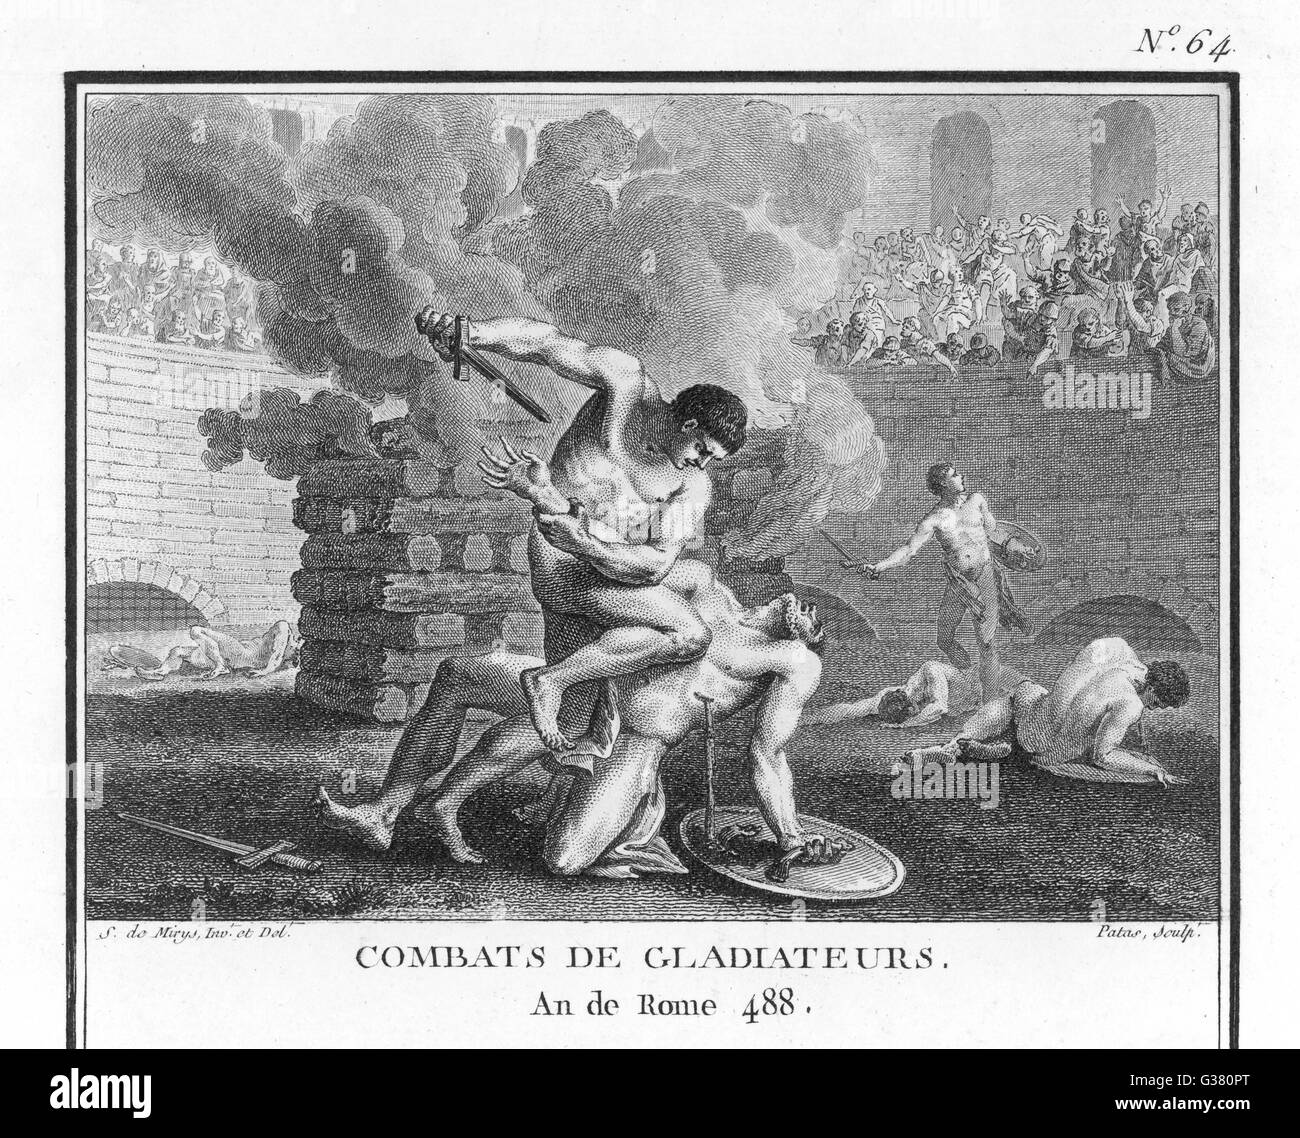 Gladiators in combat in mortal combat in an arena  (with fire behind them). - Stock Image